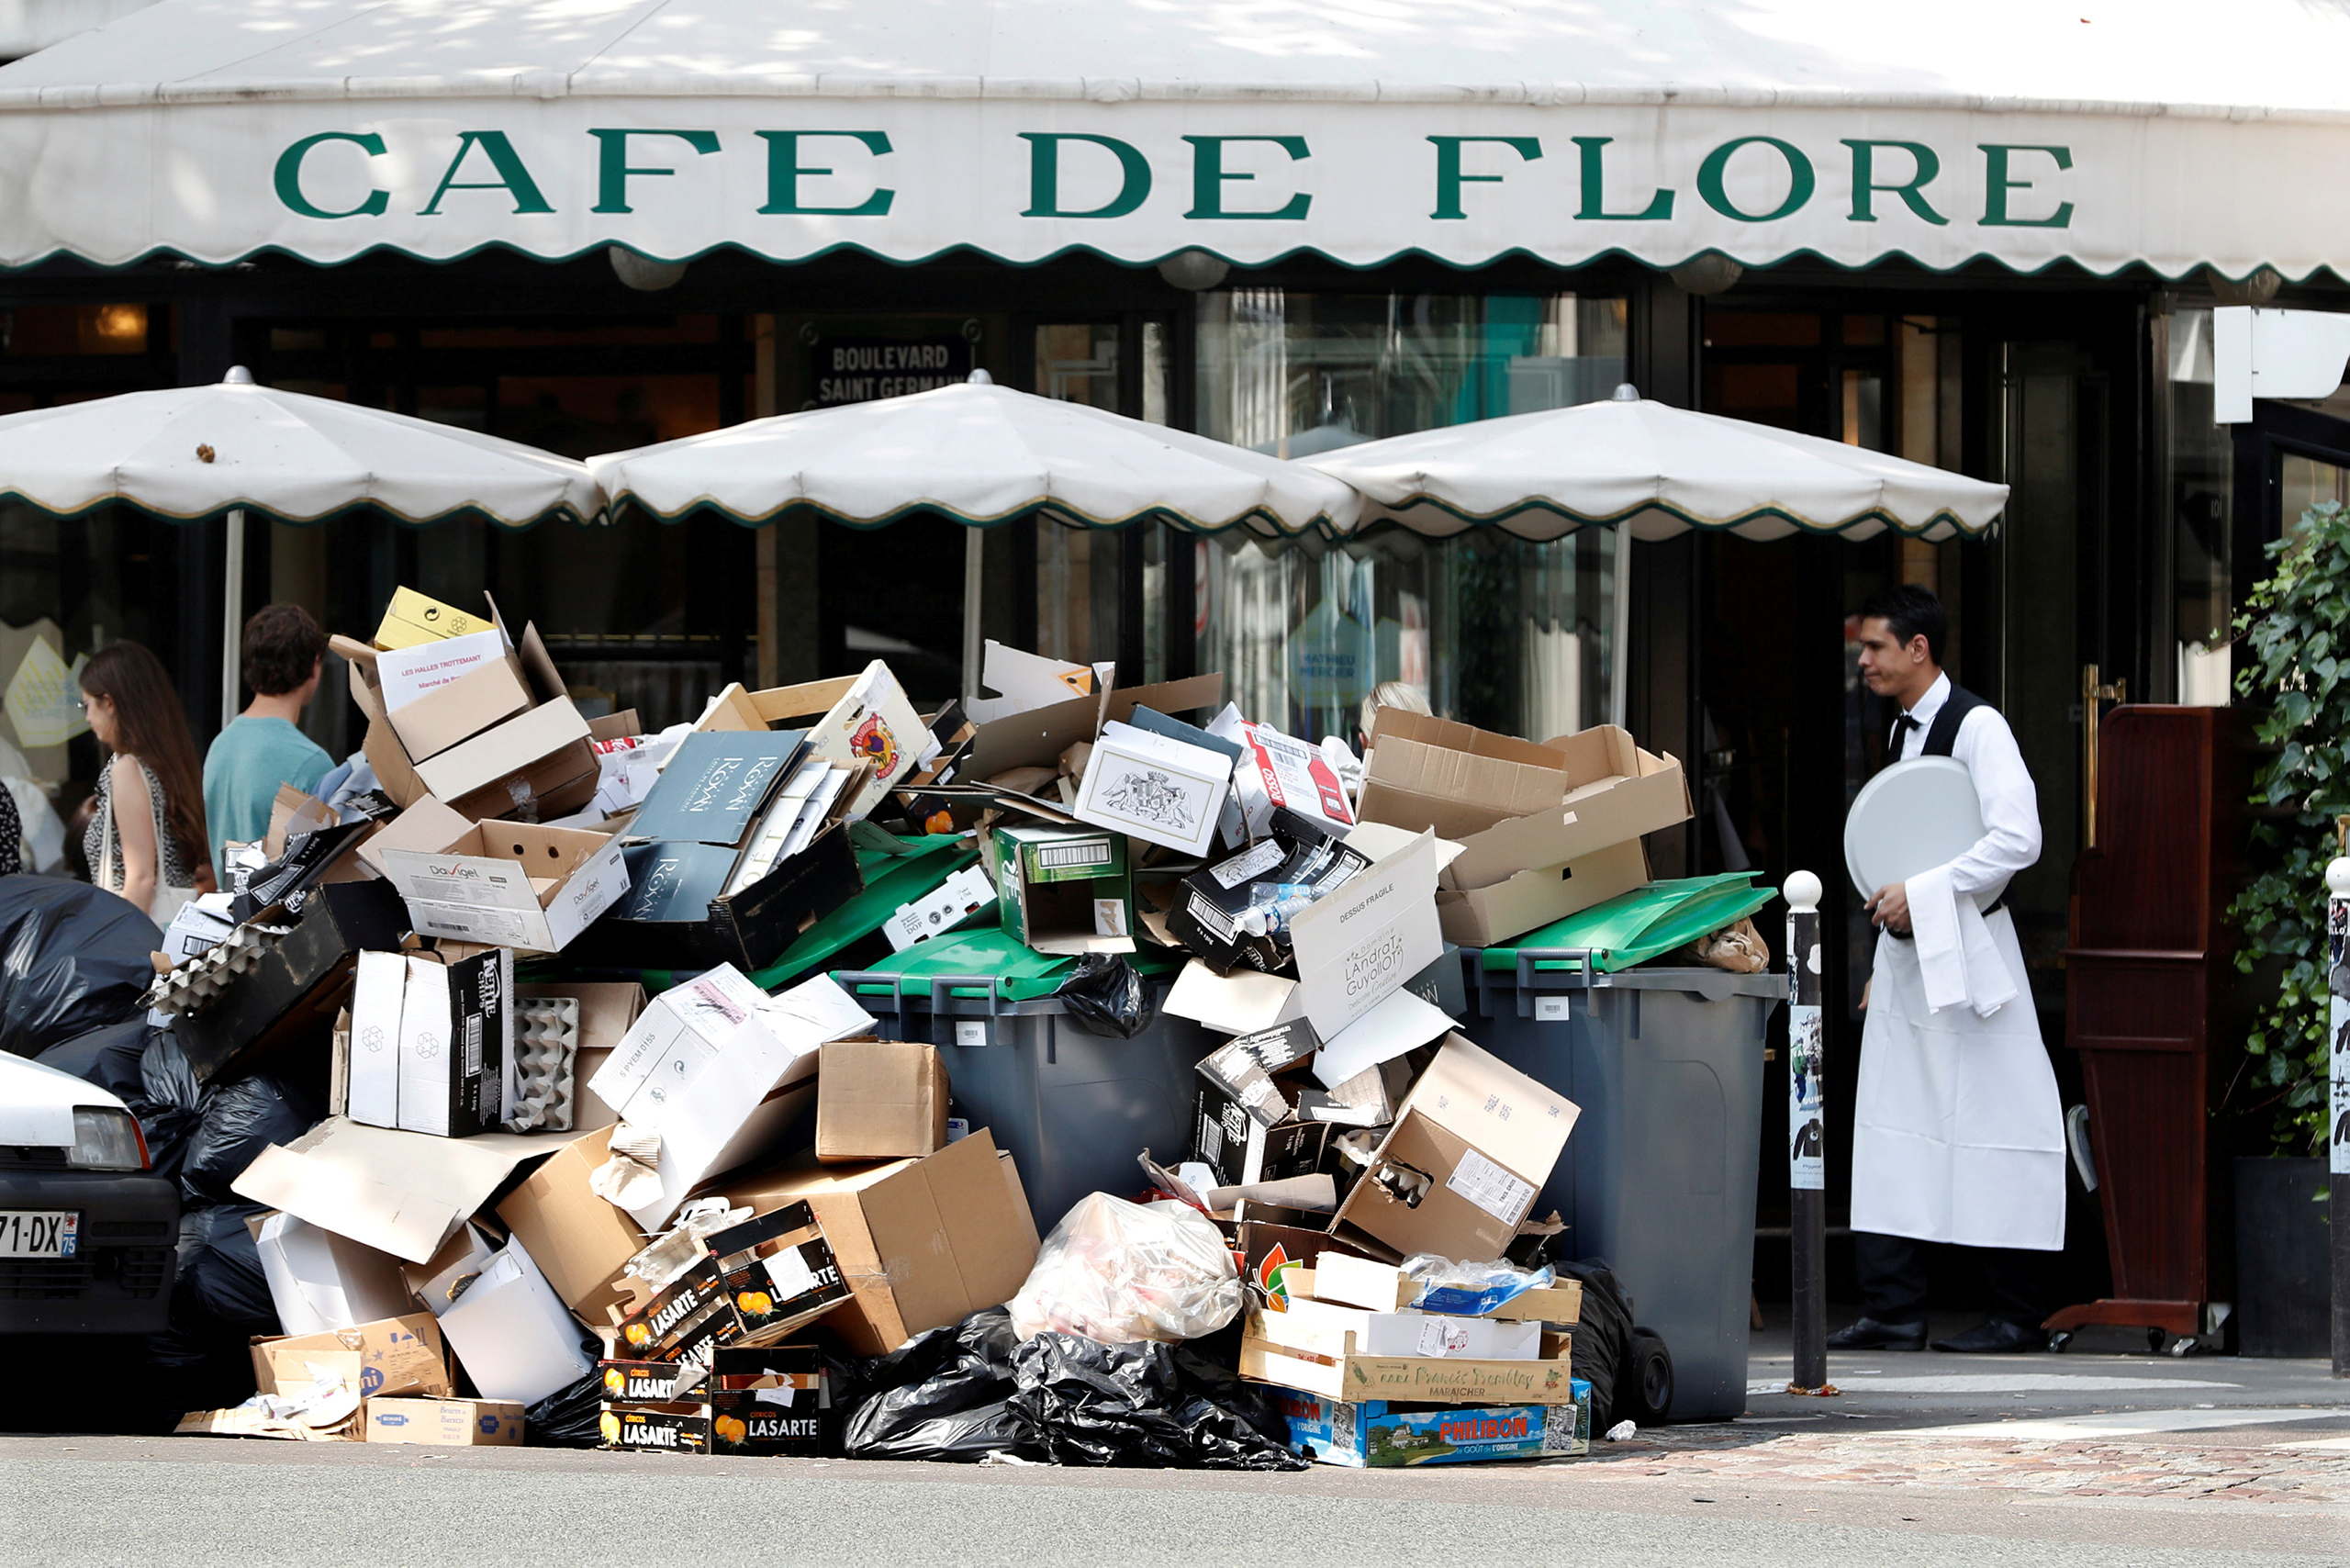 A waiter stands near a pile of garbage bags in front of the Cafe de Flore during a strike of garbage collectors and sewer workers to protest the labour reforms law proposal in Paris on June 8, 2016.